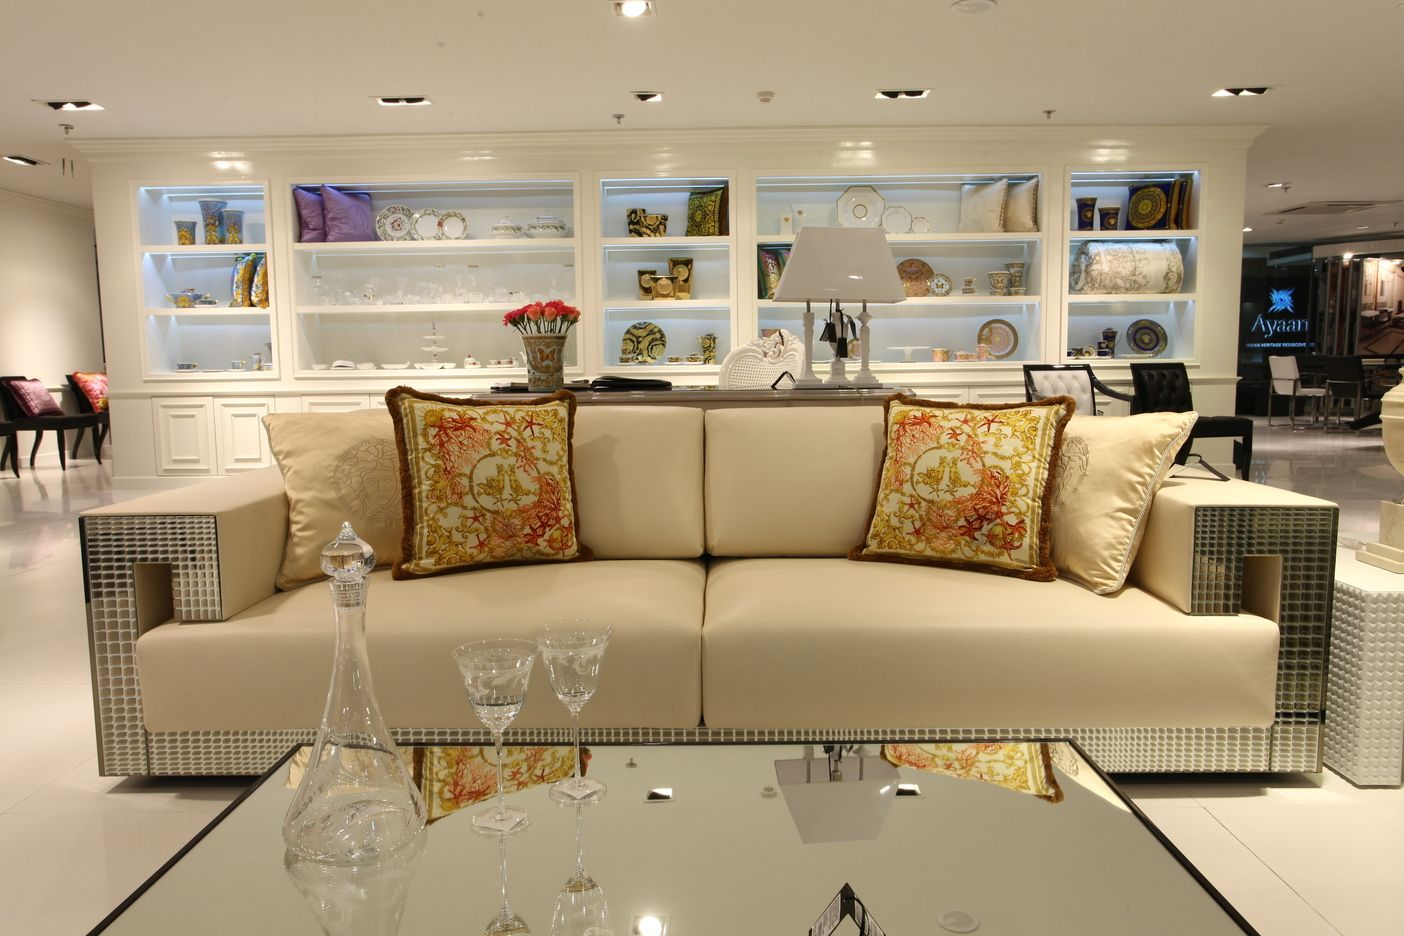 versace sofa designer throw pillows for couch dreams pinterest home